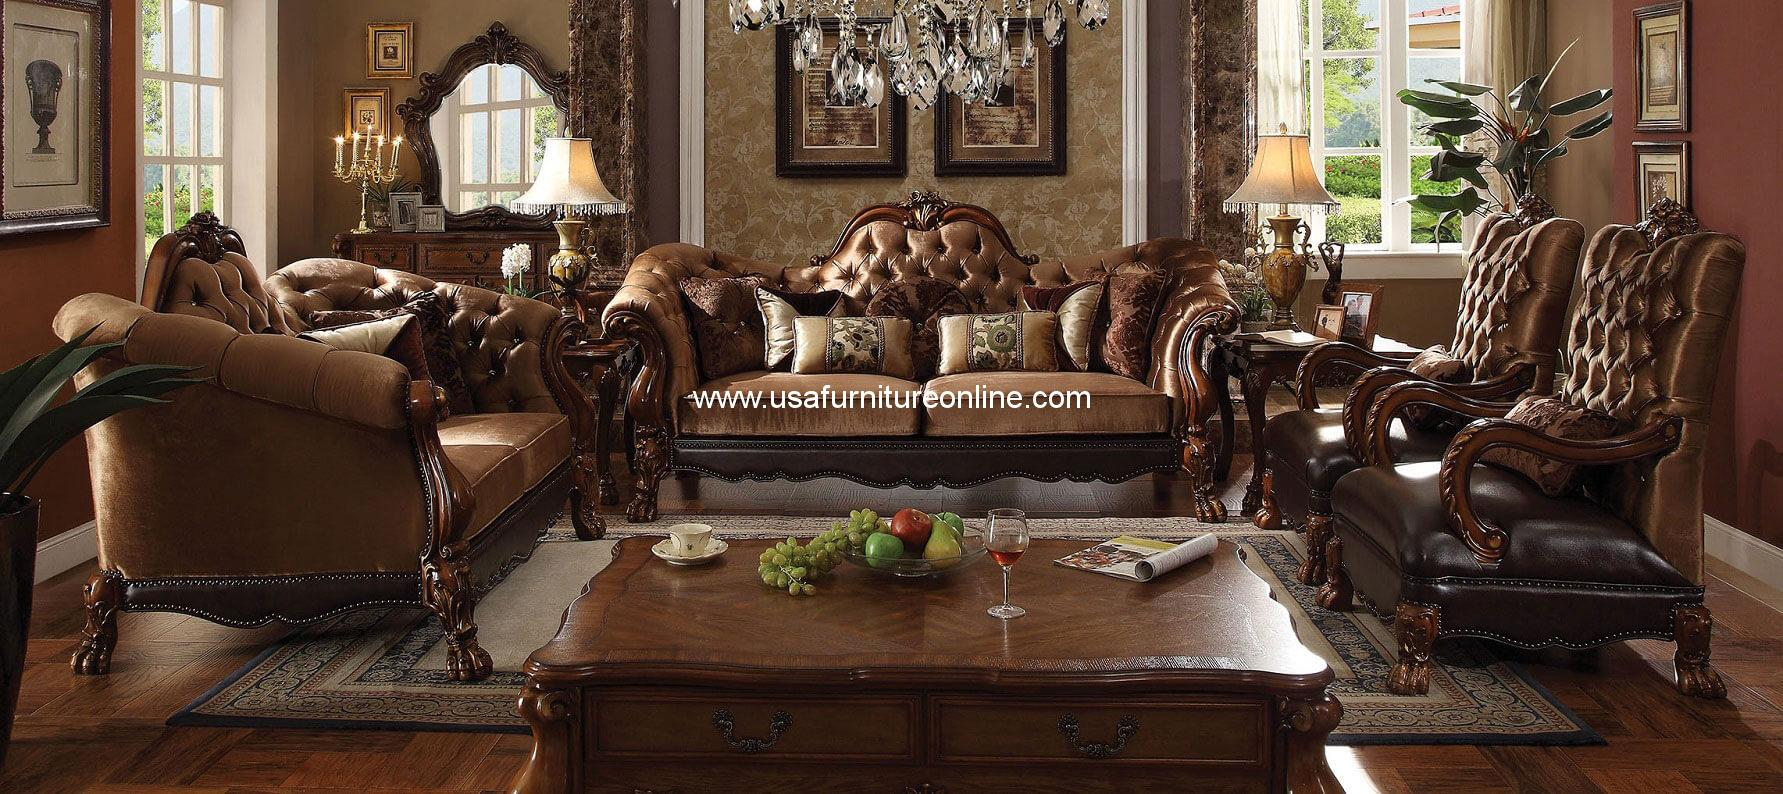 About acme 2 piece wood trim golden brown velvet living room set